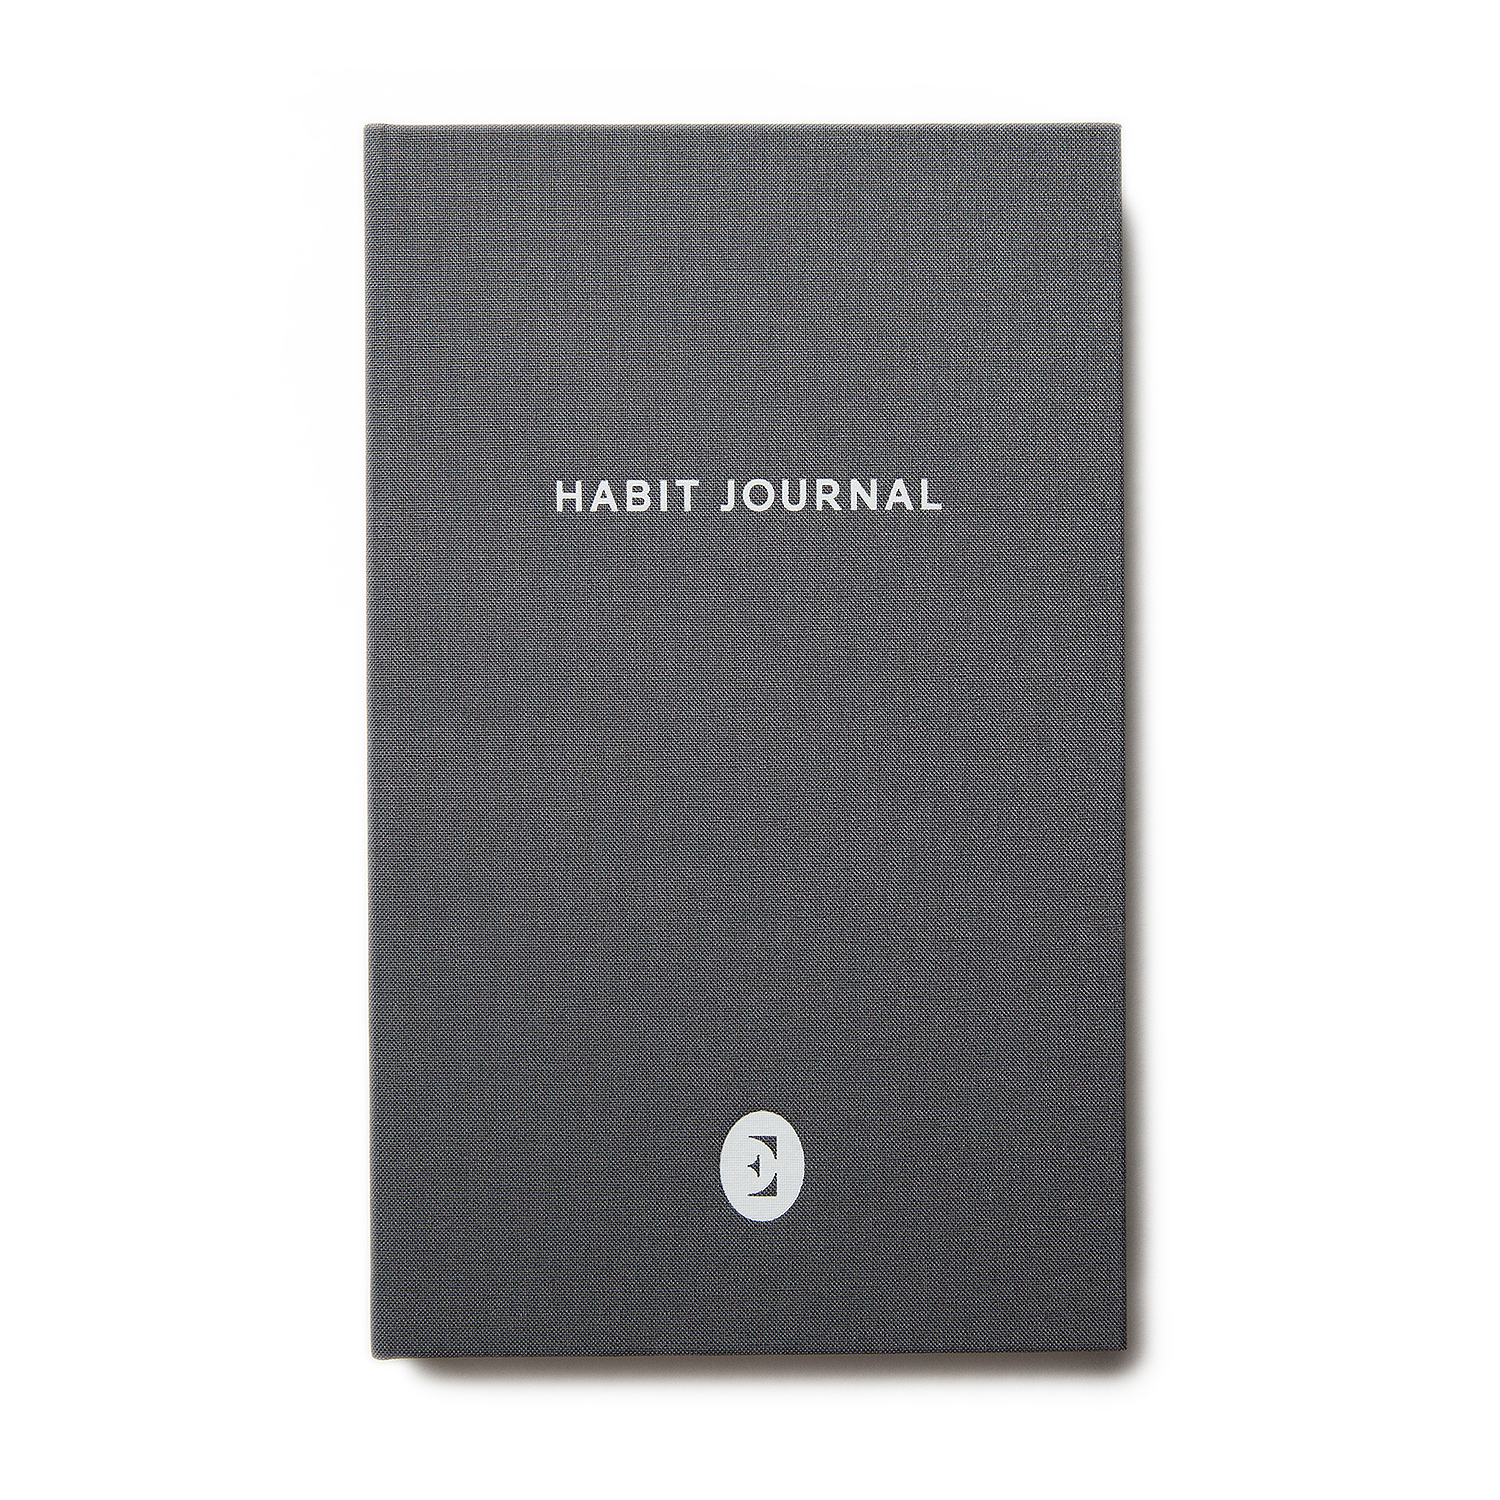 Habit Journal